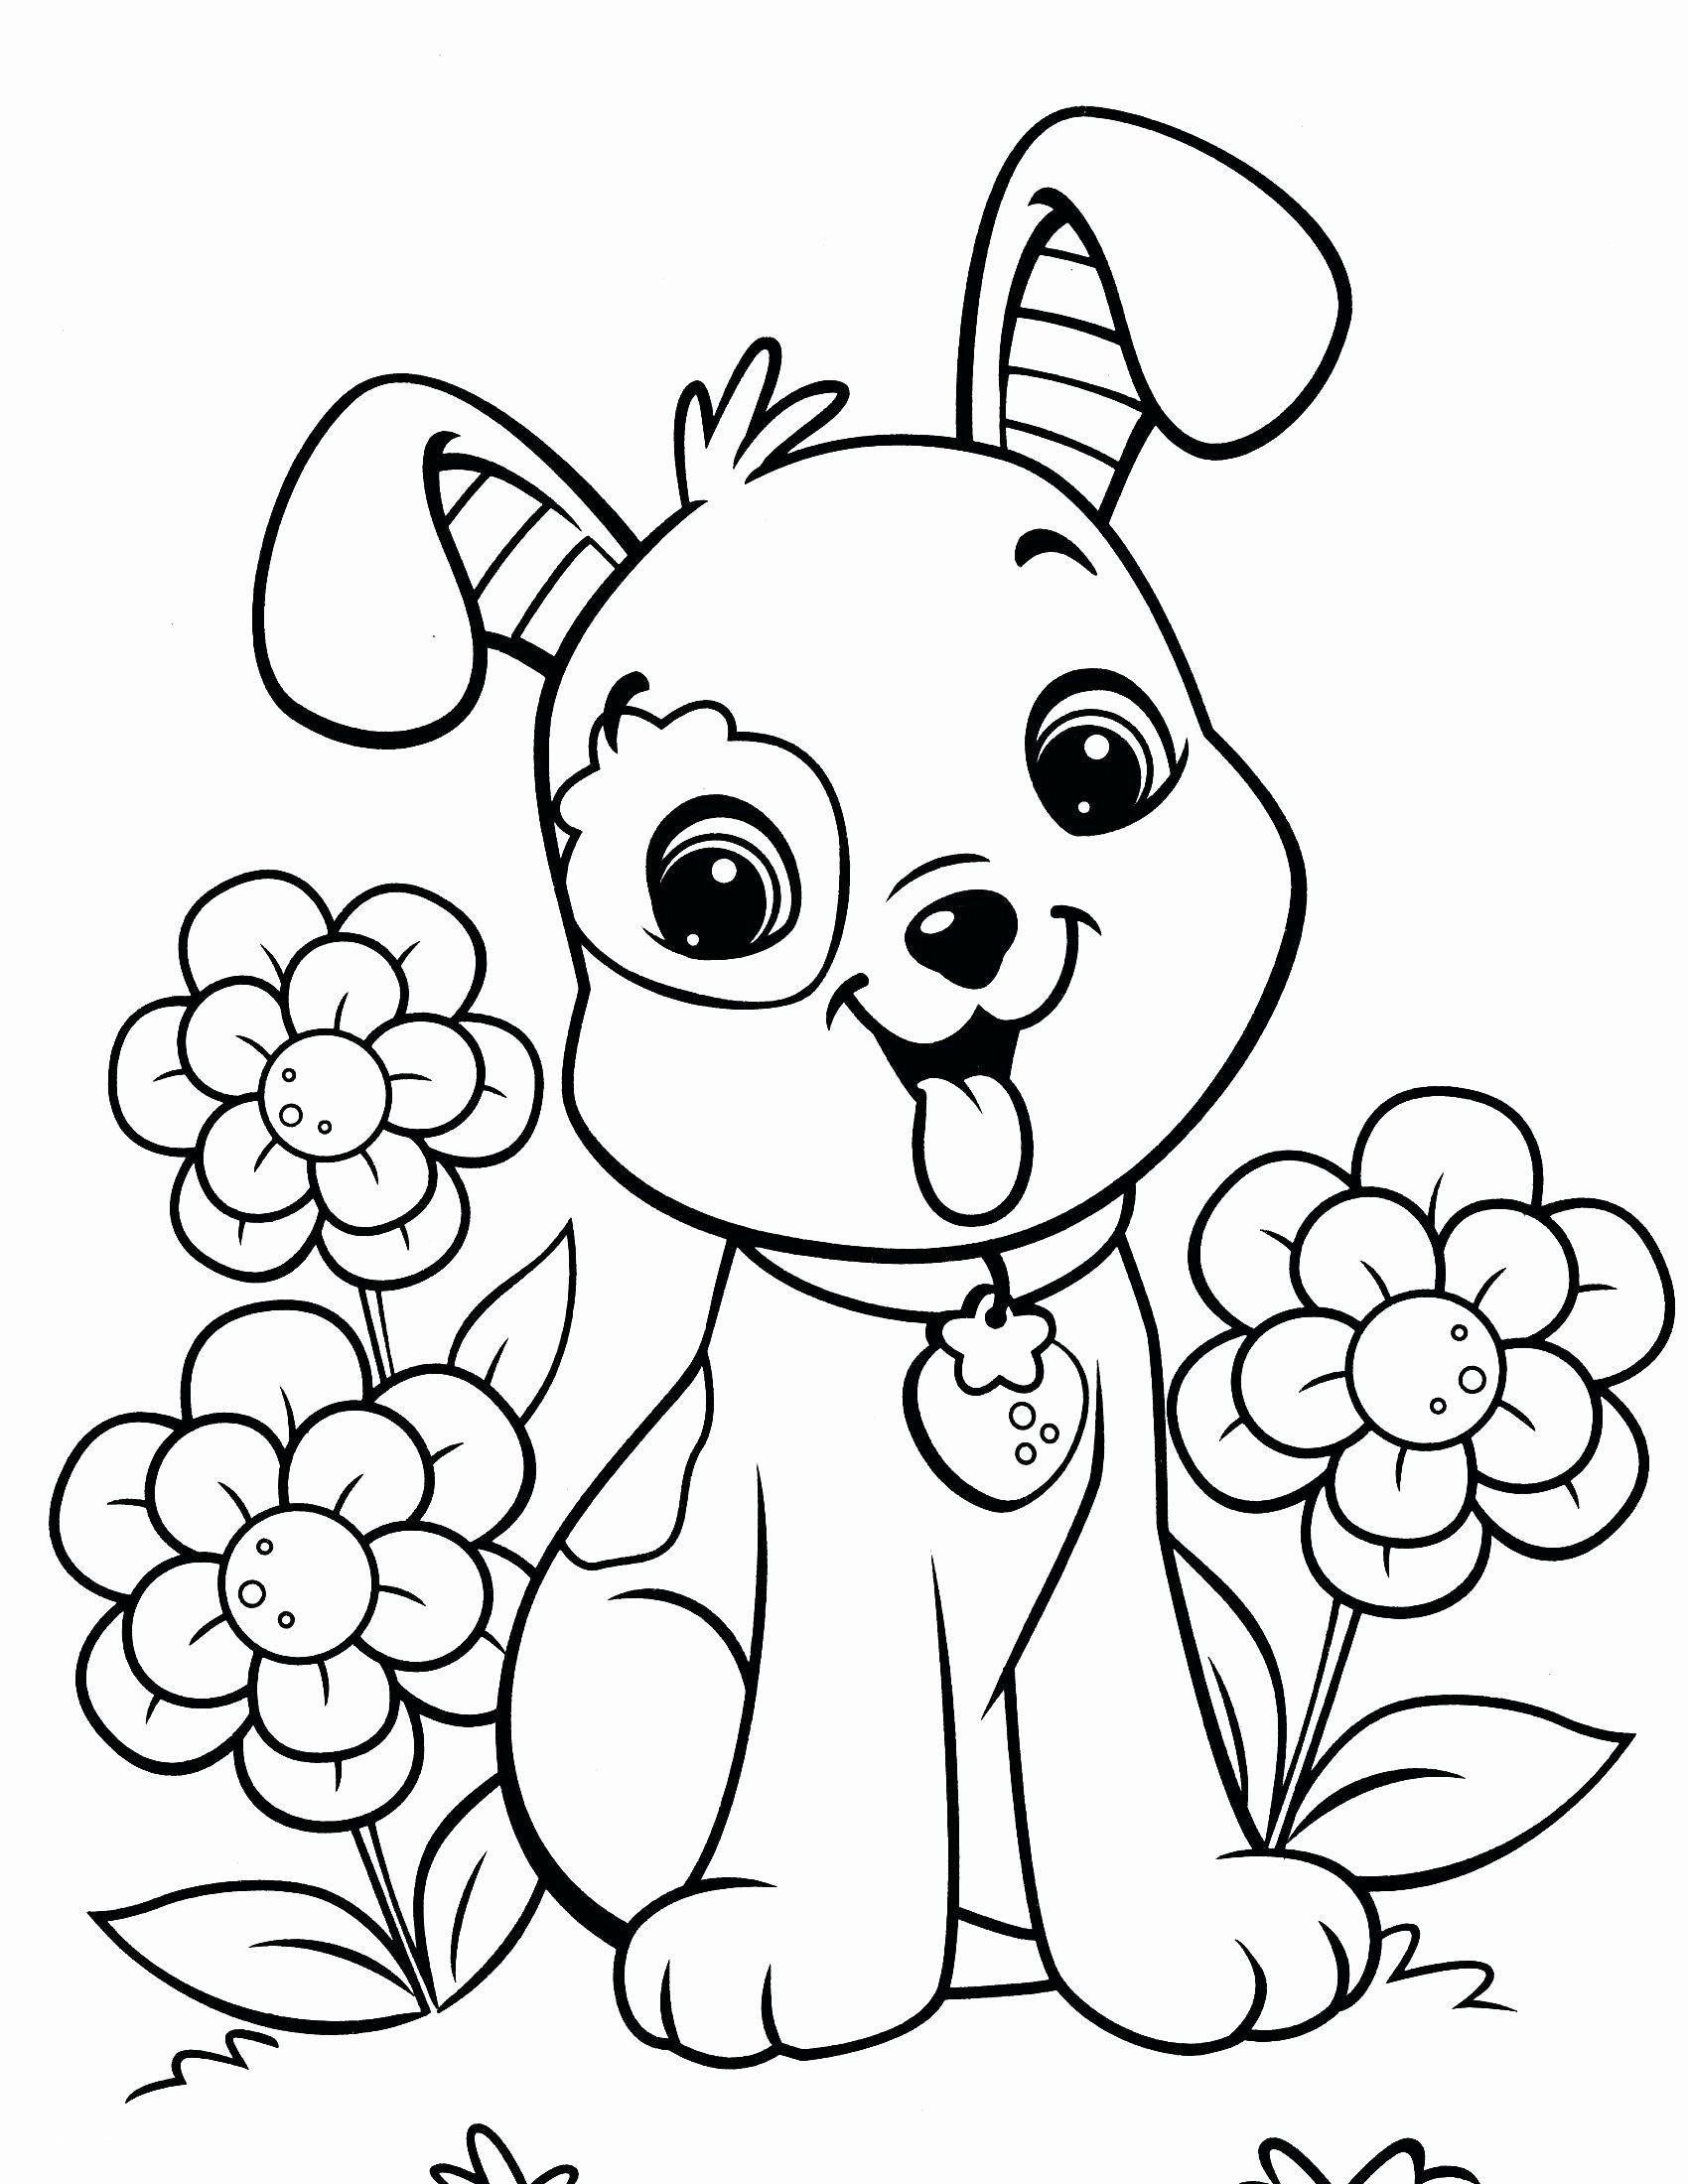 Printable Cutting Worksheets for Preschoolers Excelent Preschool Coloring Pages – Approachingtheelephant